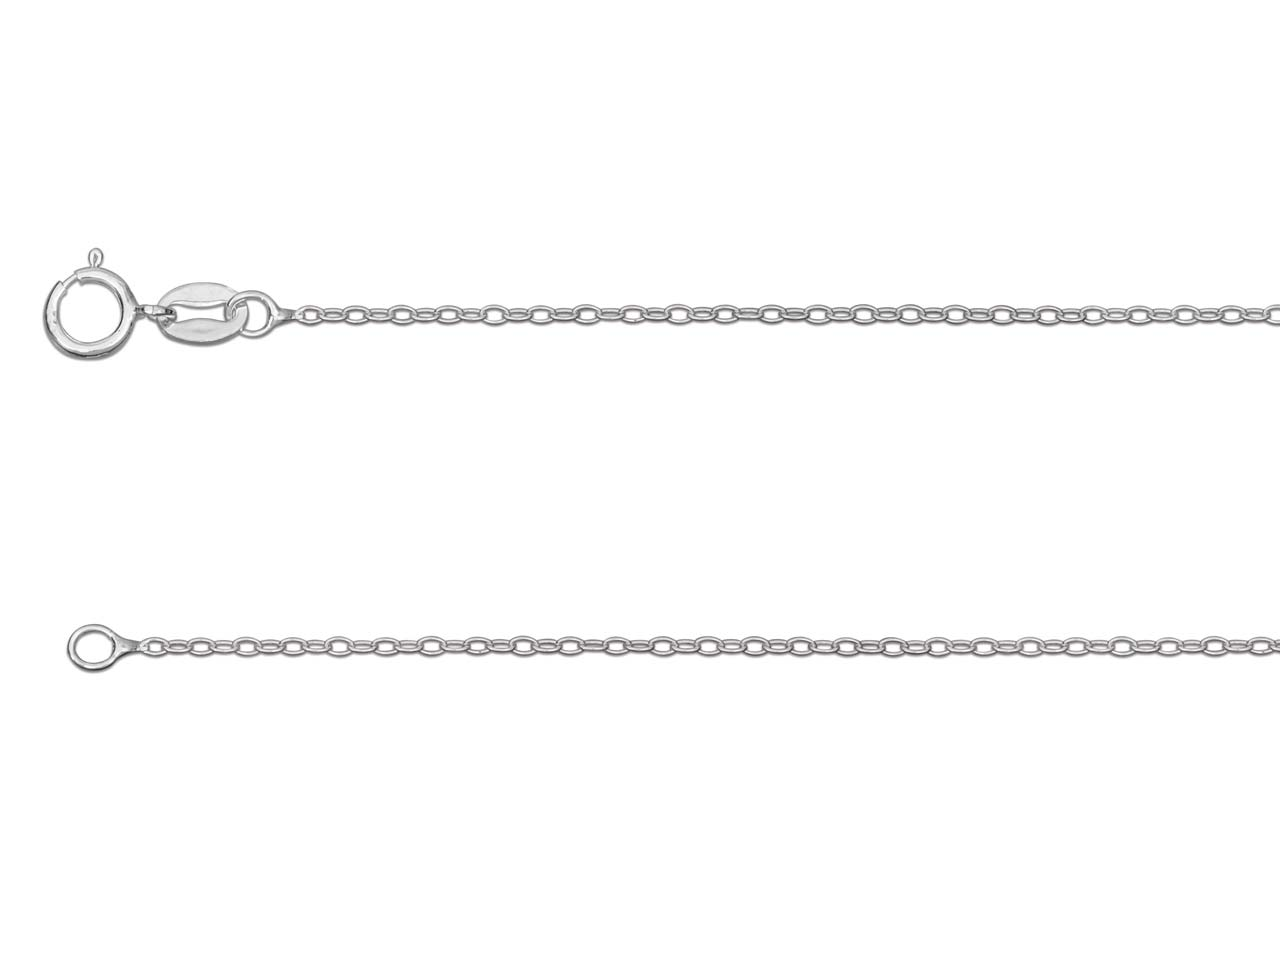 Silver sterling chain type Forçat_ultra_light